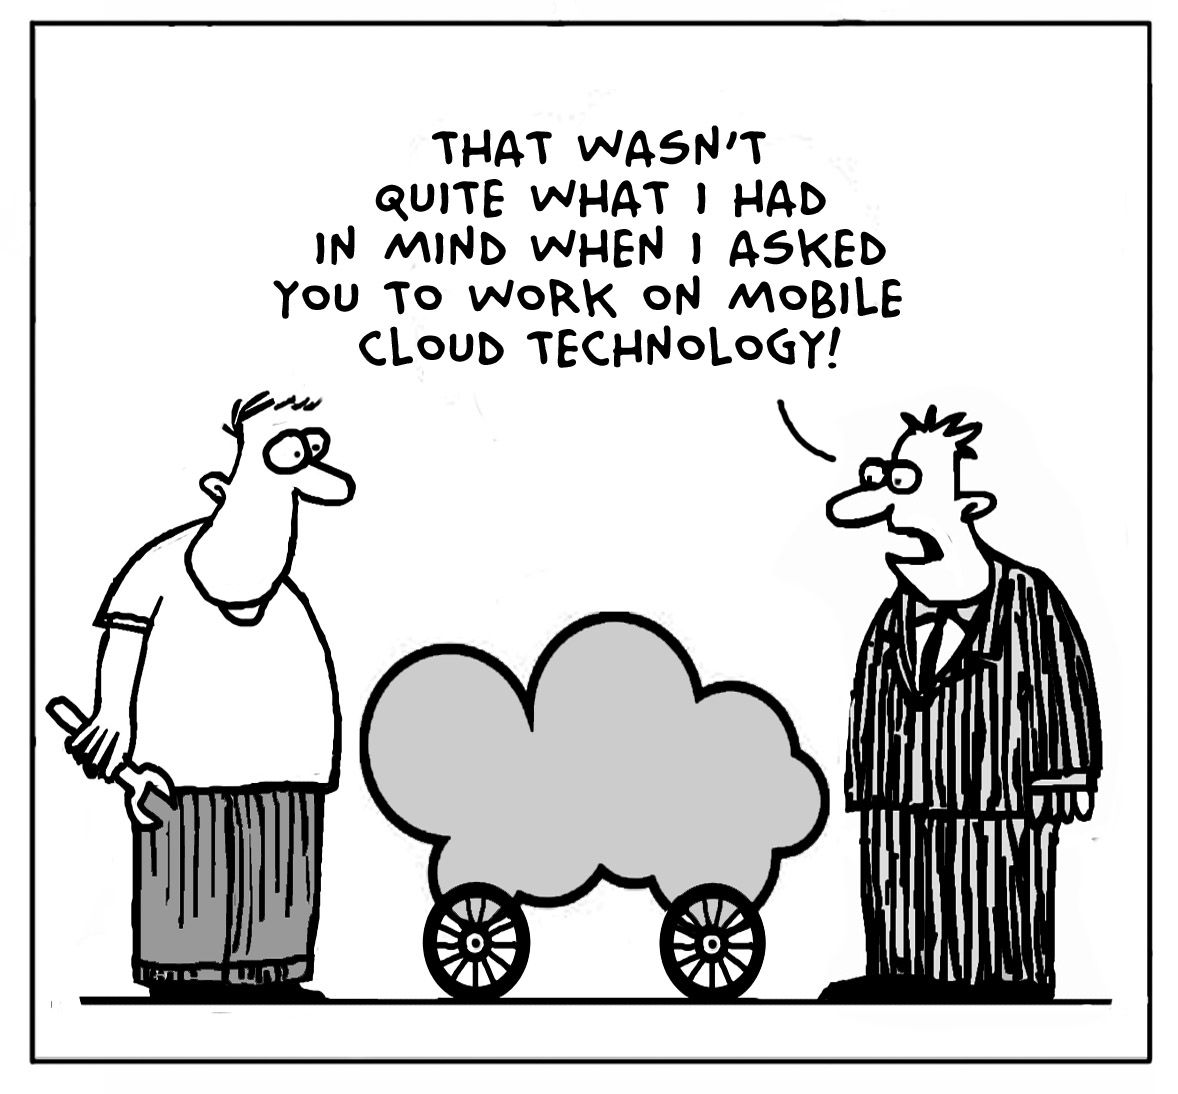 Is This A Mobile Cloud Are You Serious